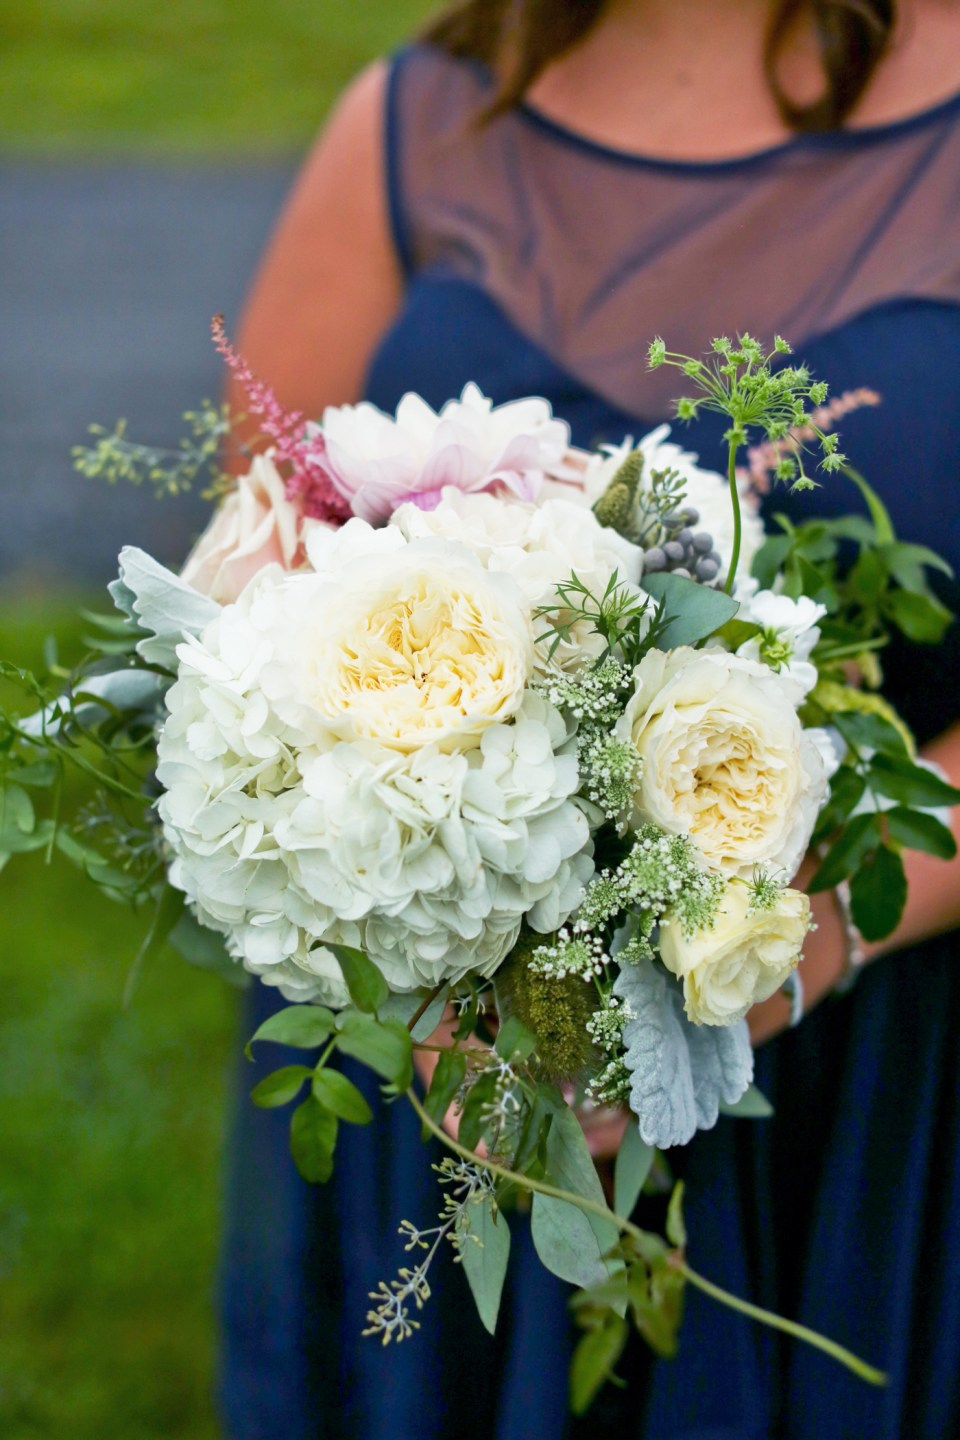 Wedding-Bouquet-Inspiration-Flowers-Bridal-Bridesmaids361